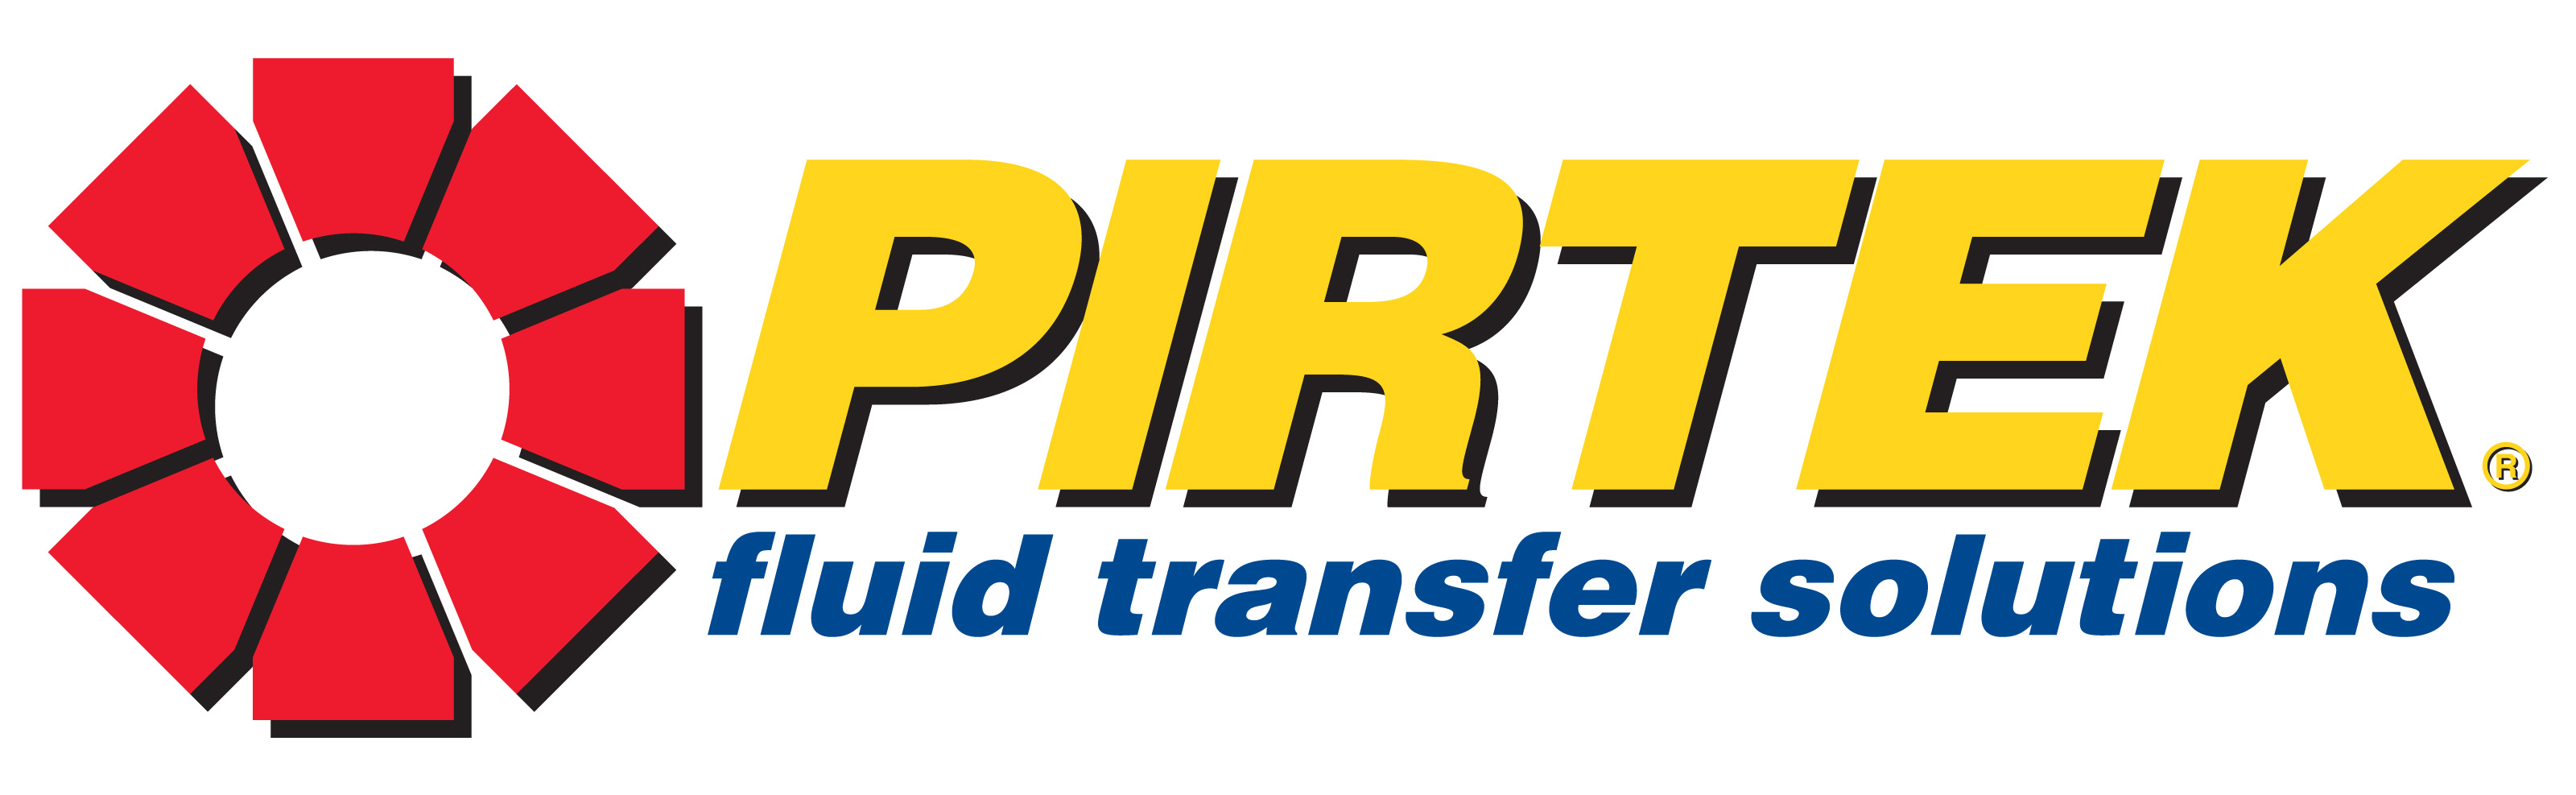 Track His Phone >> PIRTEK Fluid Transfer Solutions joins as new partner for Right Lane at RD | RICHMOND DRAGWAY